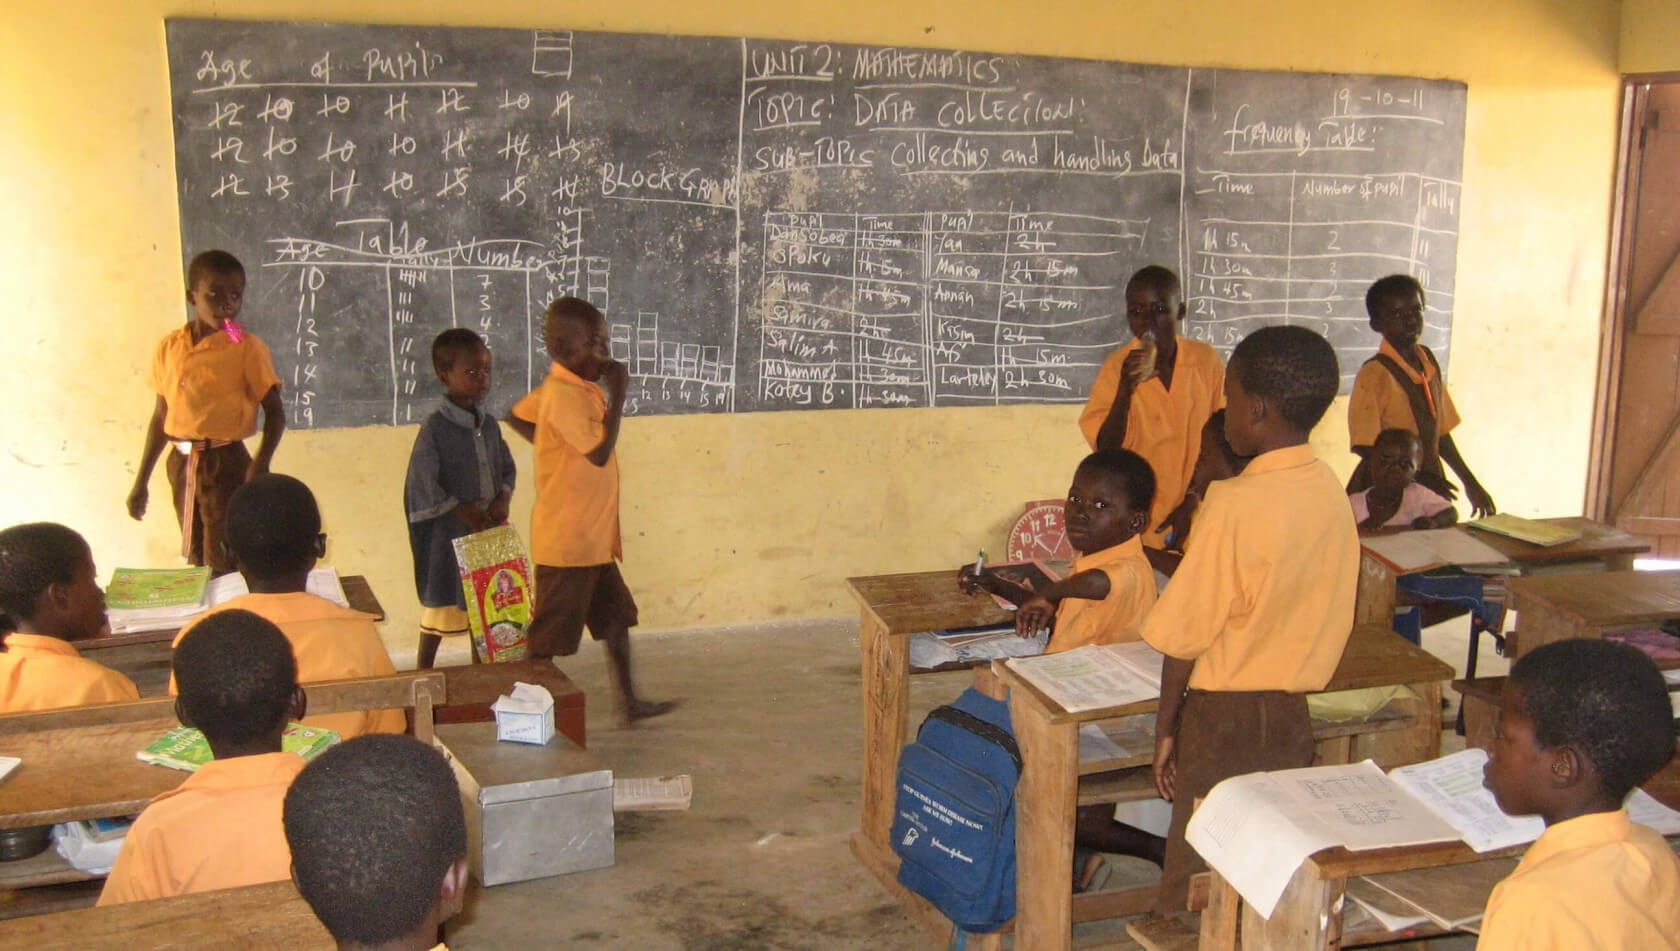 Ghana ICT teacher instructs students in low-tech style